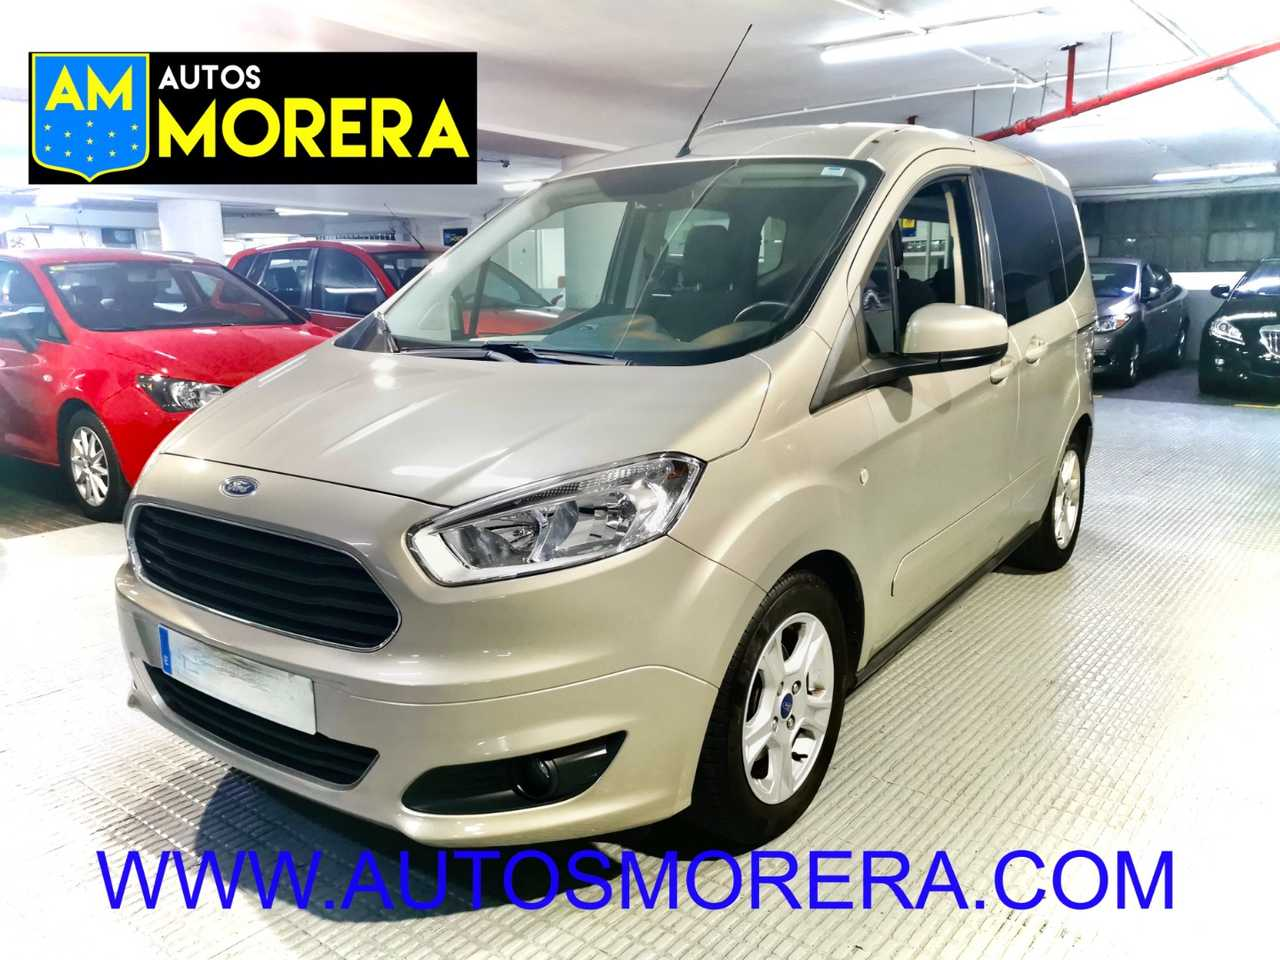 Ford Transit Courier 1.0 EcoBoost 100cv Trend. Impecable!!! Super cuidado!!!   - Foto 1